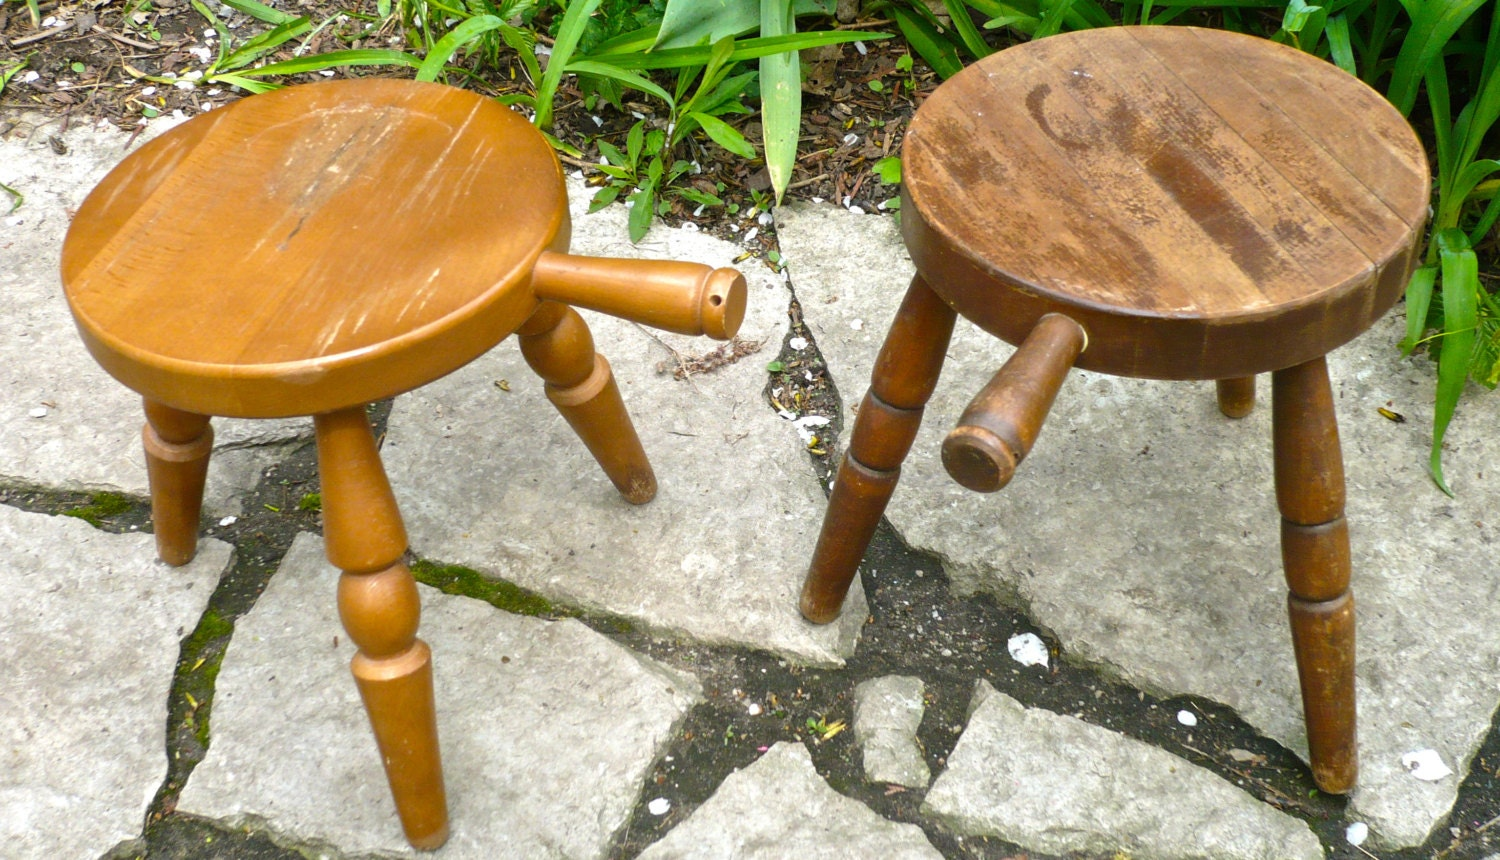 Vintage Milking Stool Three Legged Stool Spinning Stool Wood